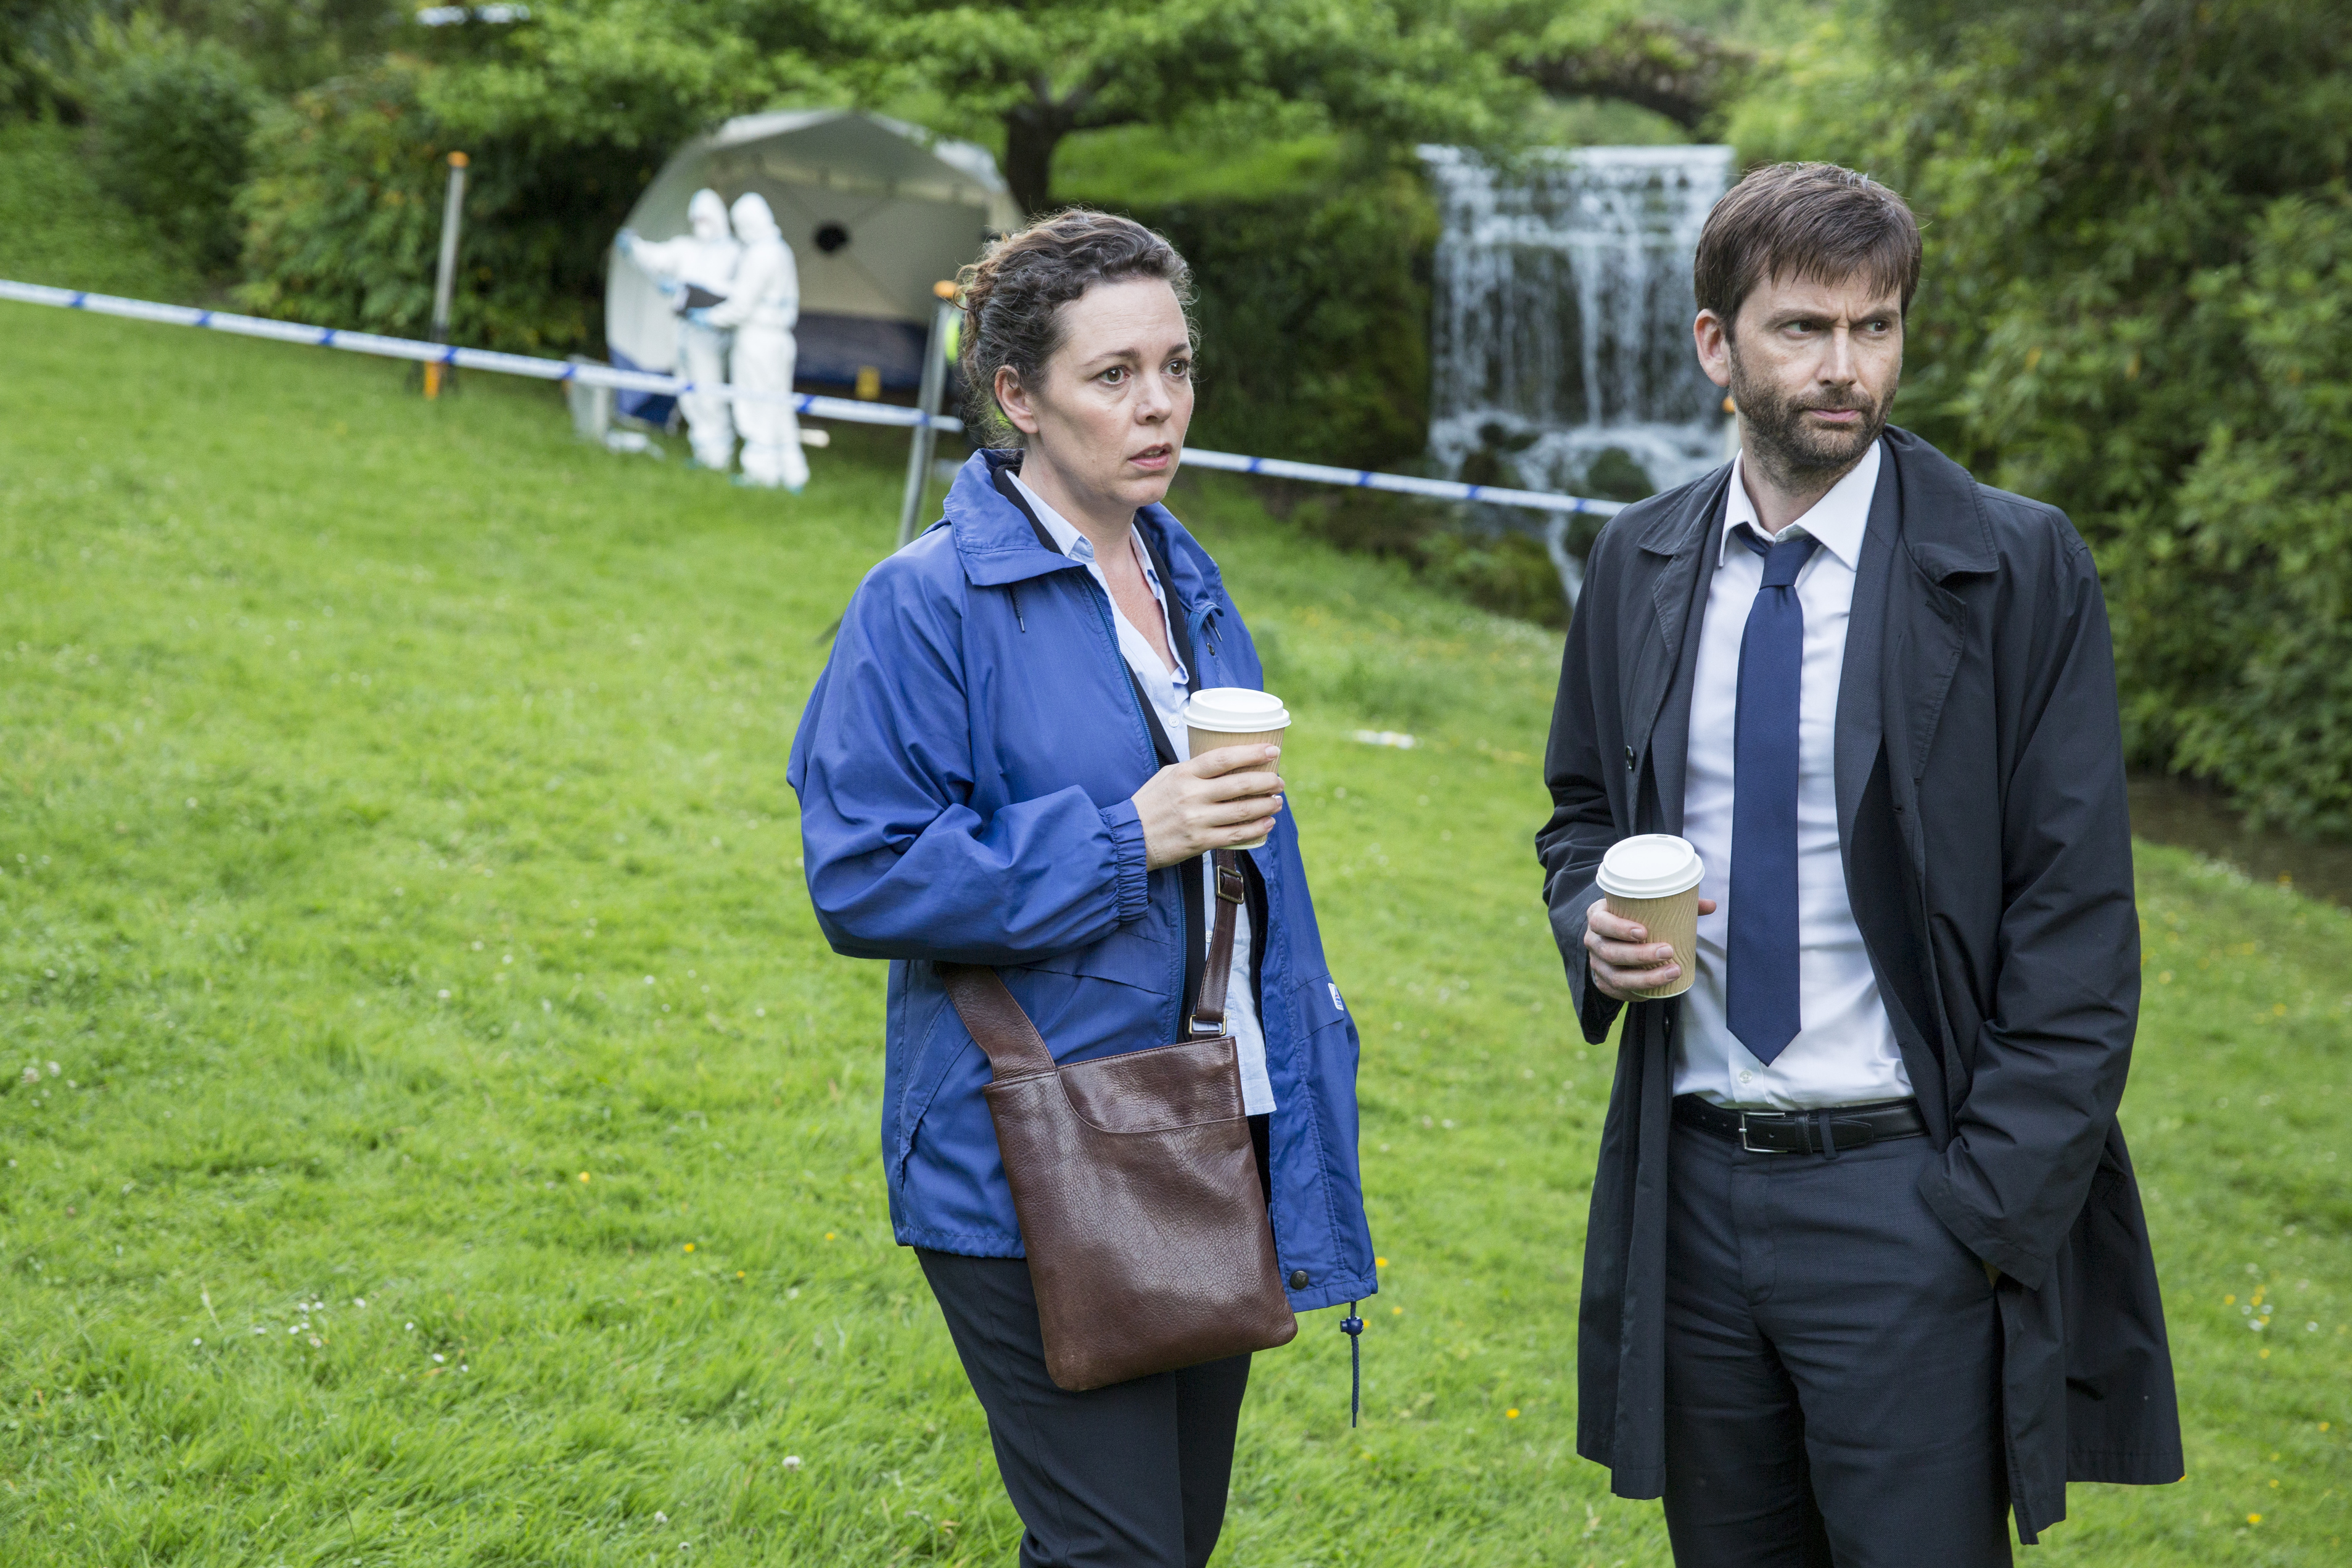 David Tennant just made a cup of tea in a microwave on Broadchurch and the internet is disgusted